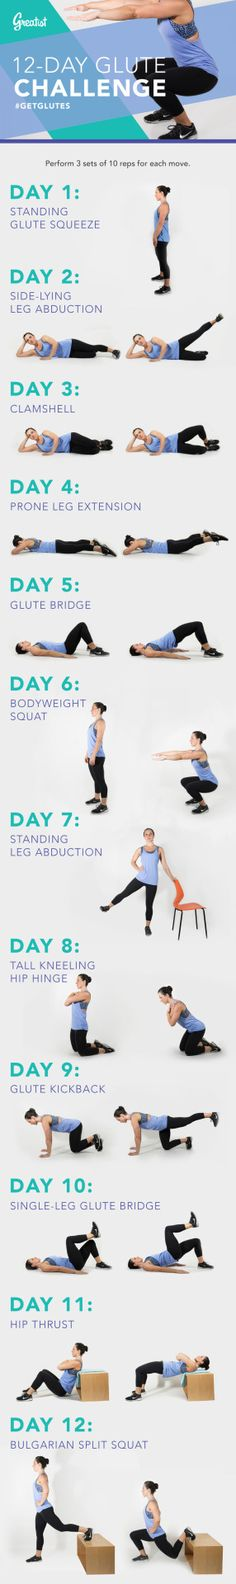 12-Day Glute Challenge (click on image) Greatist writes: Glutes are hugely important for everyday functional fitness tasks, from picking up a bag of groceries to bending over to tie your shoes. We...